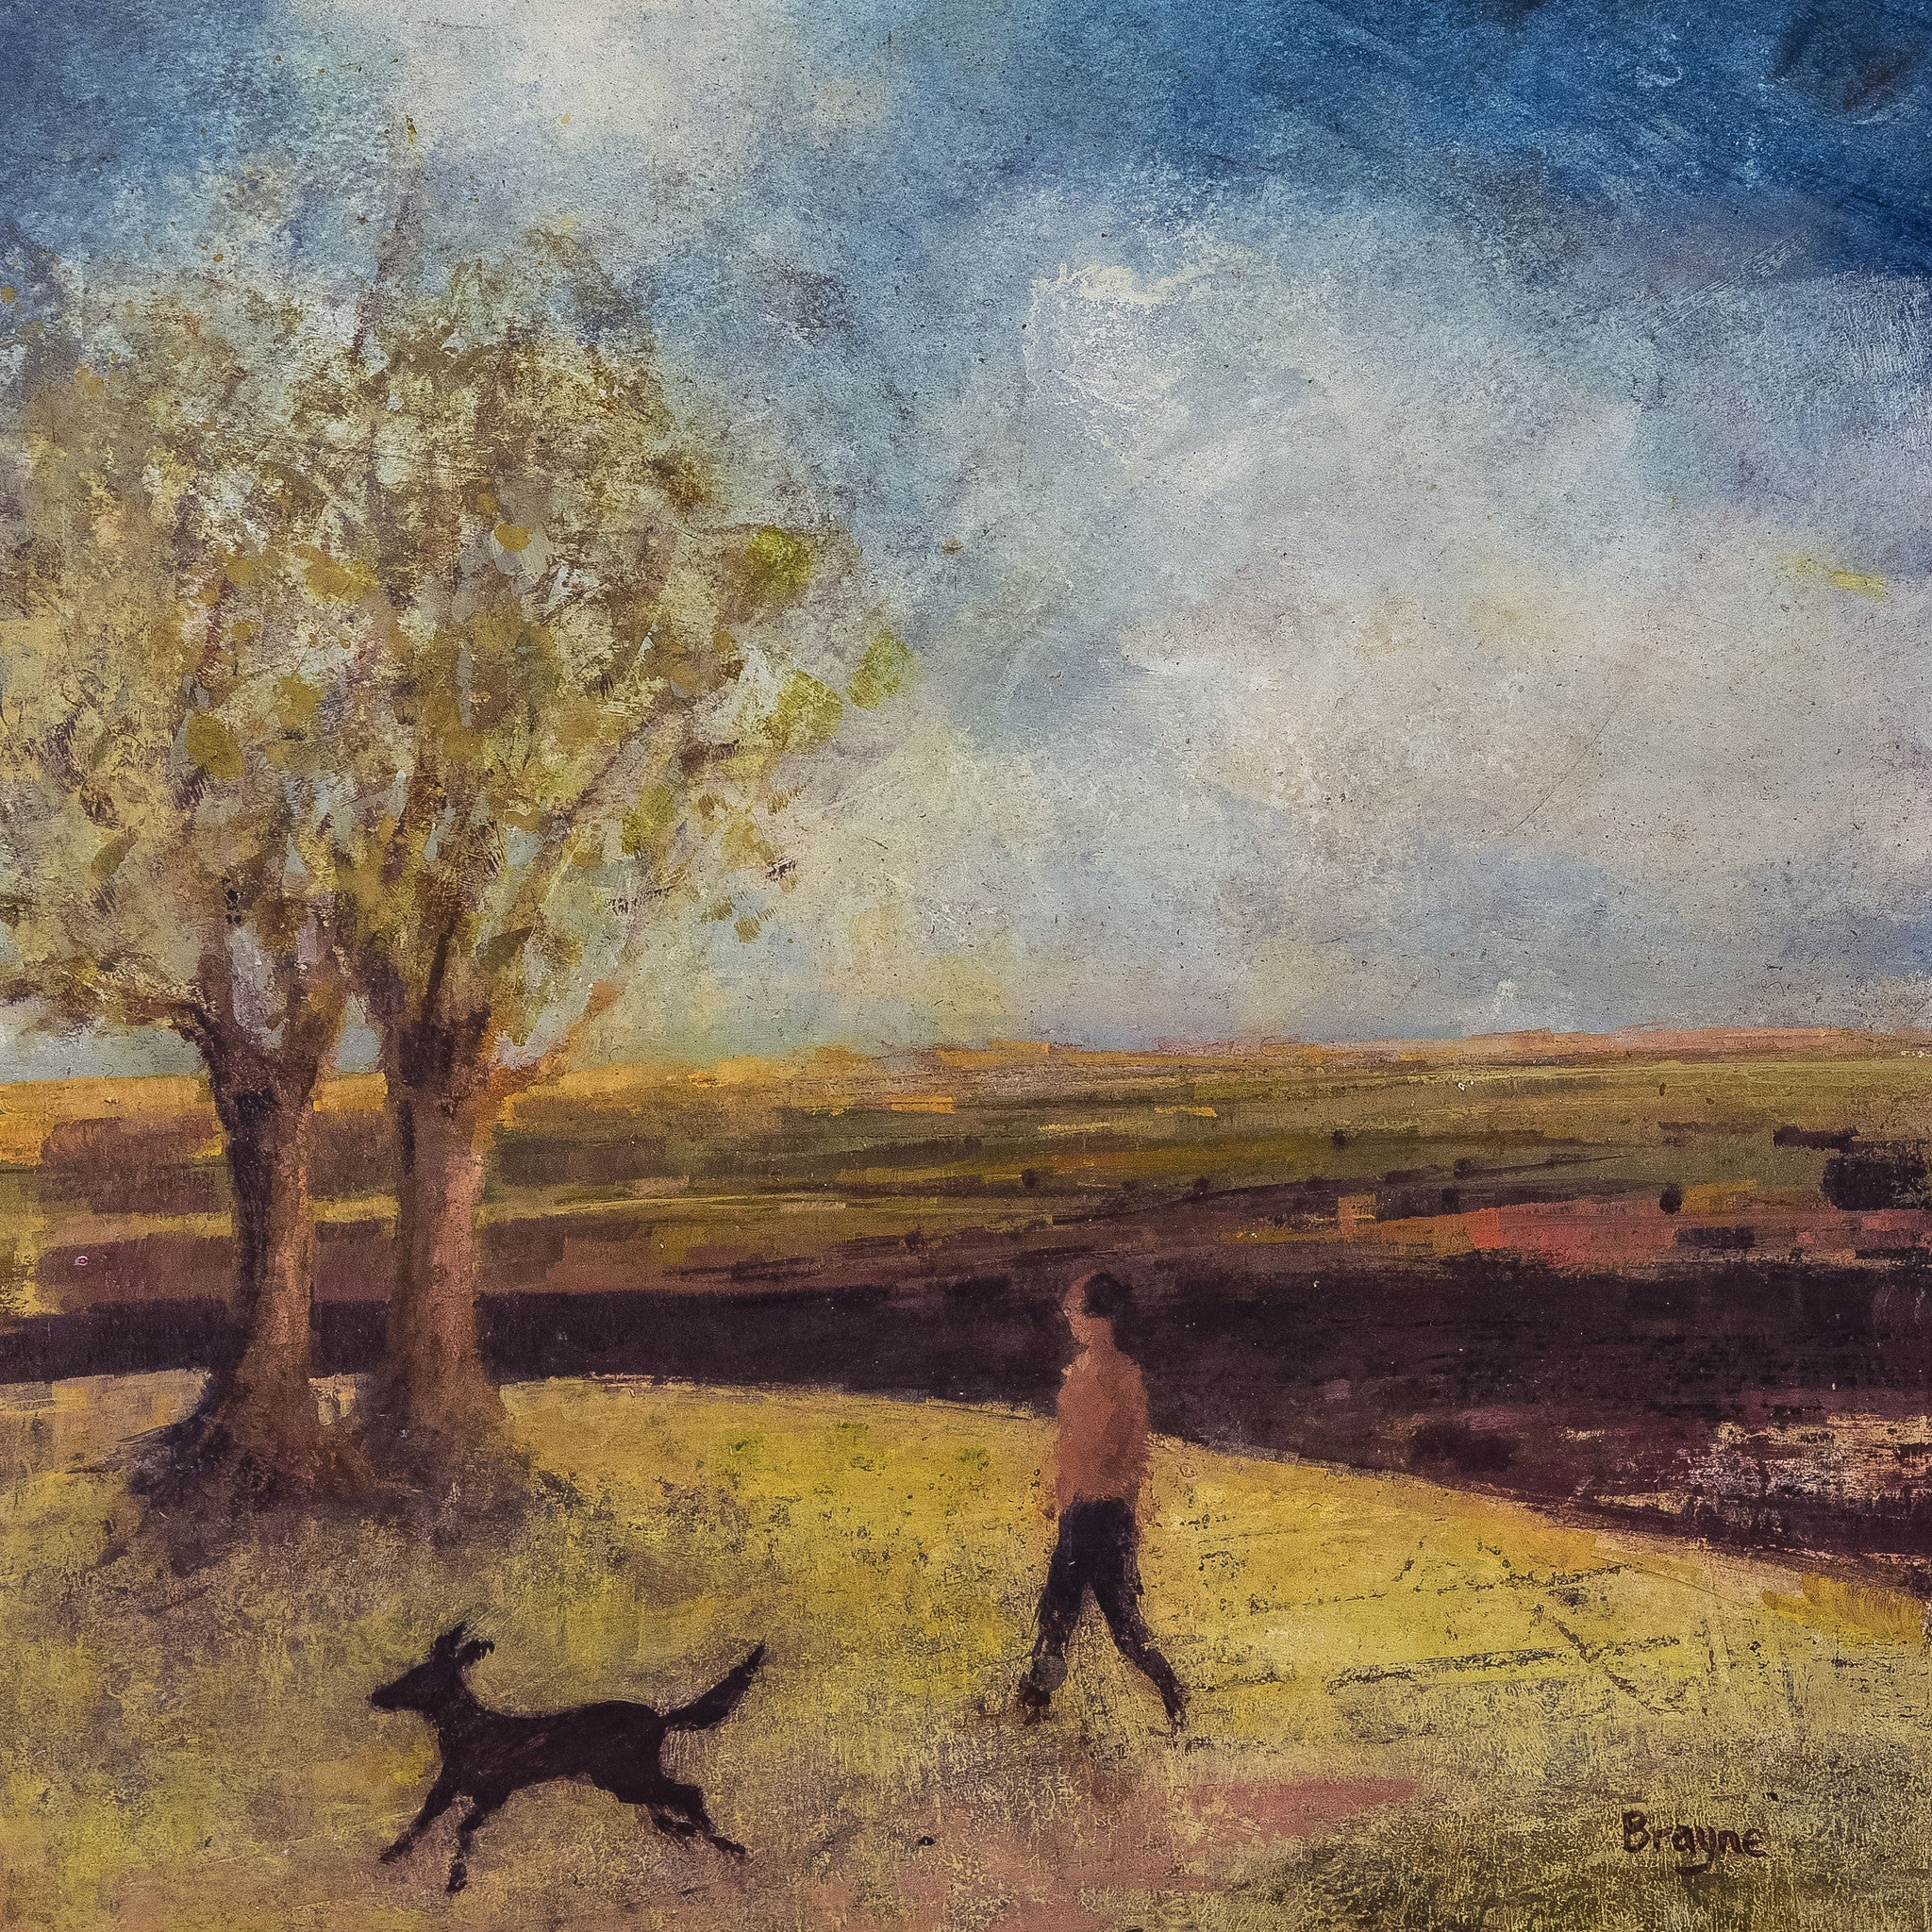 Edge of the Wood by David Brayne, Fine Art Greeting Card, Pigment and Acrylic on Canvas, Landscape with man and dog